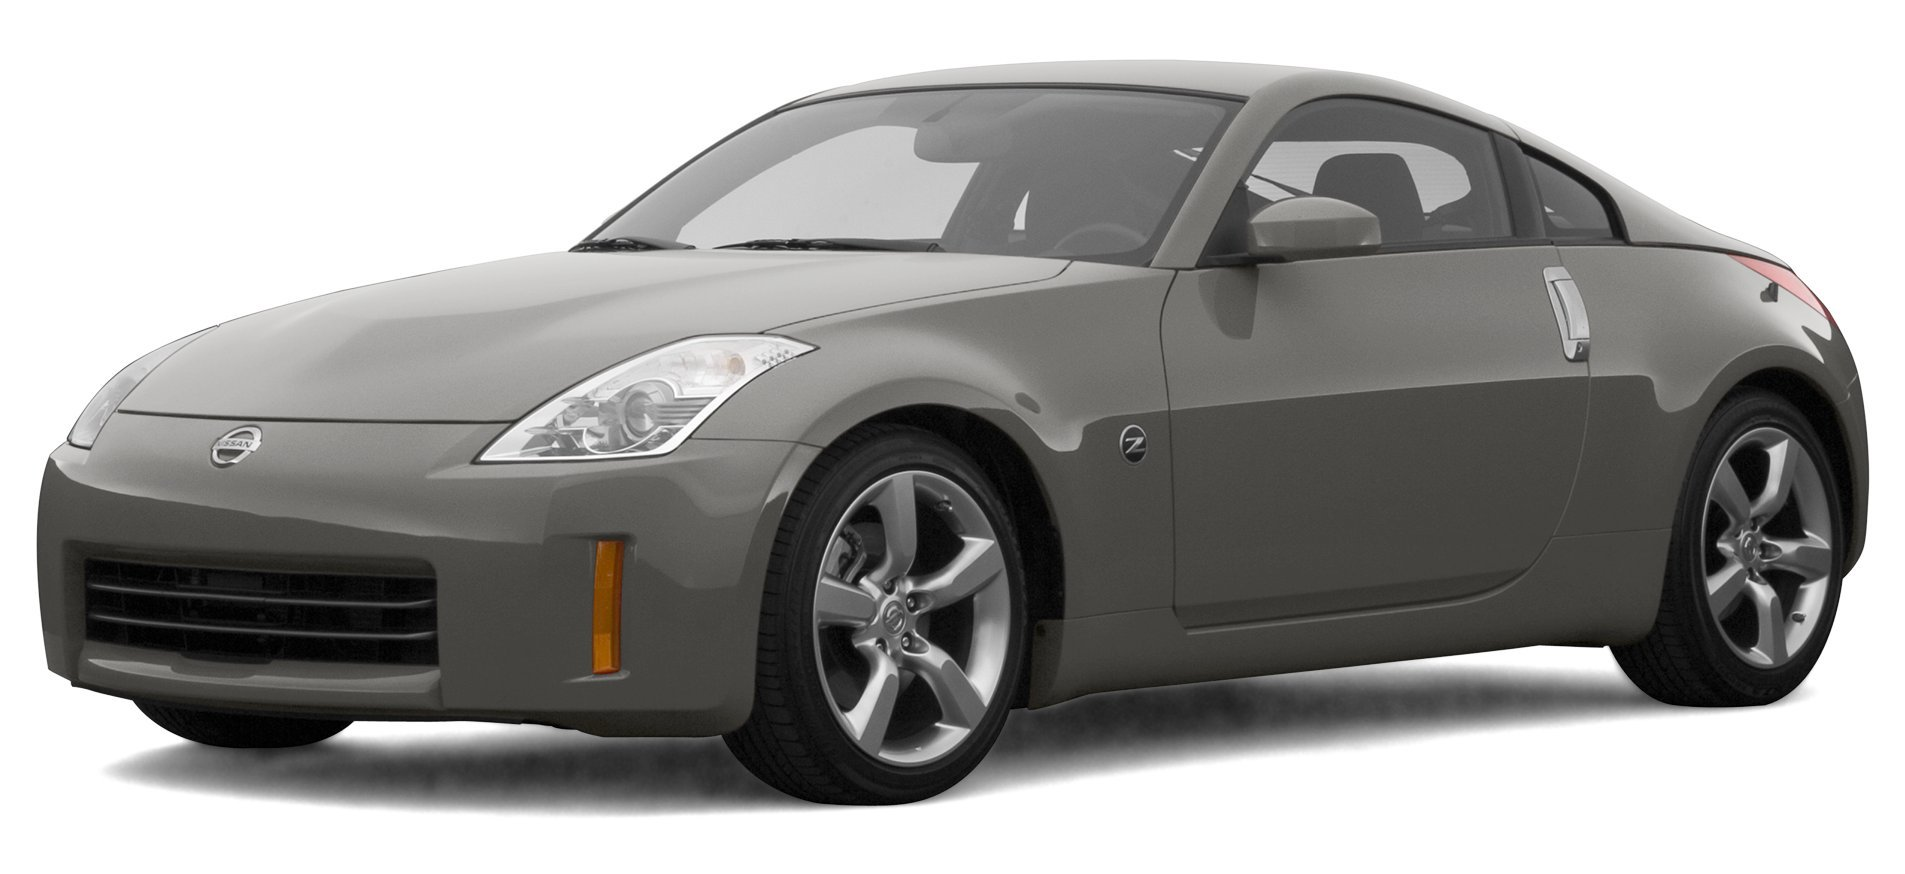 2007 Nissan 350Z, 2-Door Coupe Manual Transmission